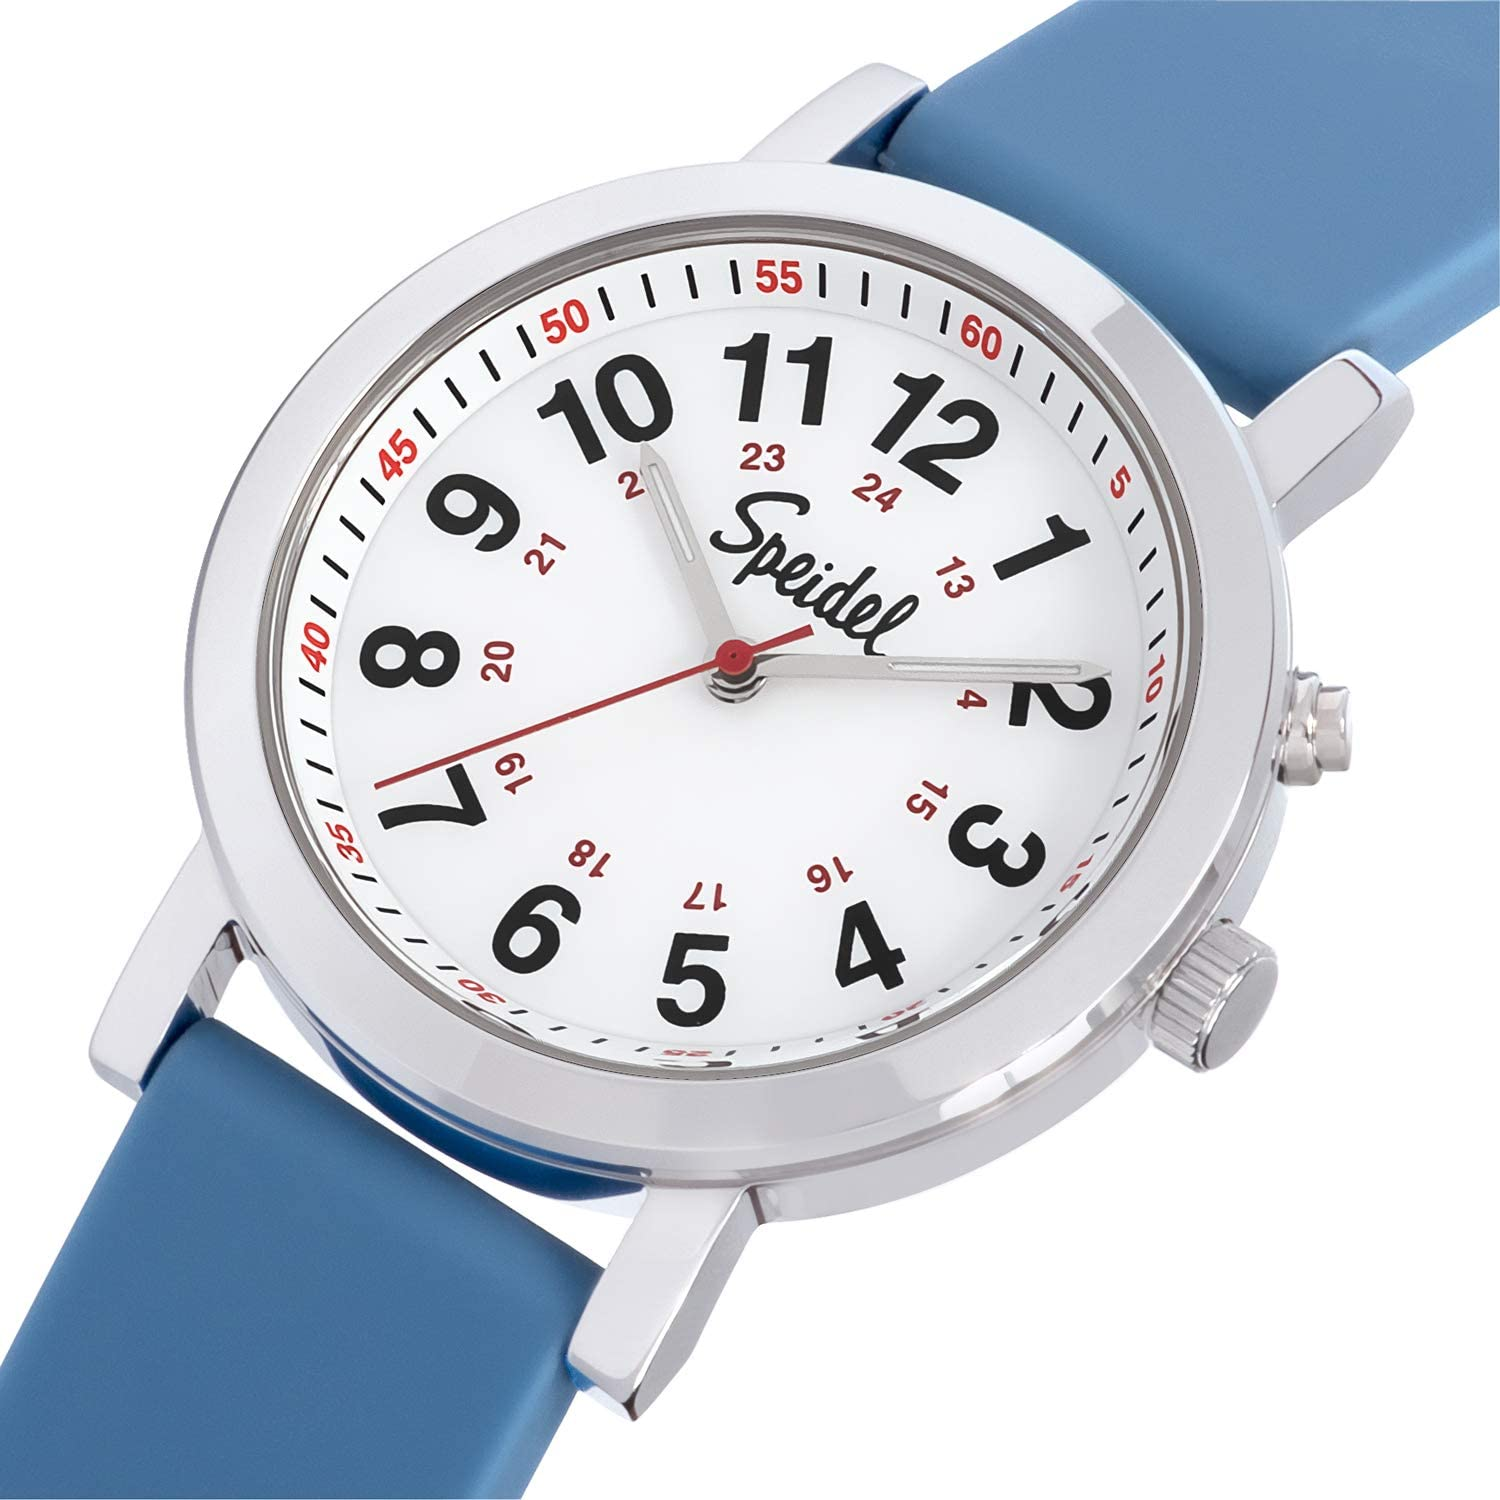 Speidel Medical Scrub Glow Watch - Silicone Band, 24 Hour Marks, Second Hand, Lighted Easy-Read Face Blue